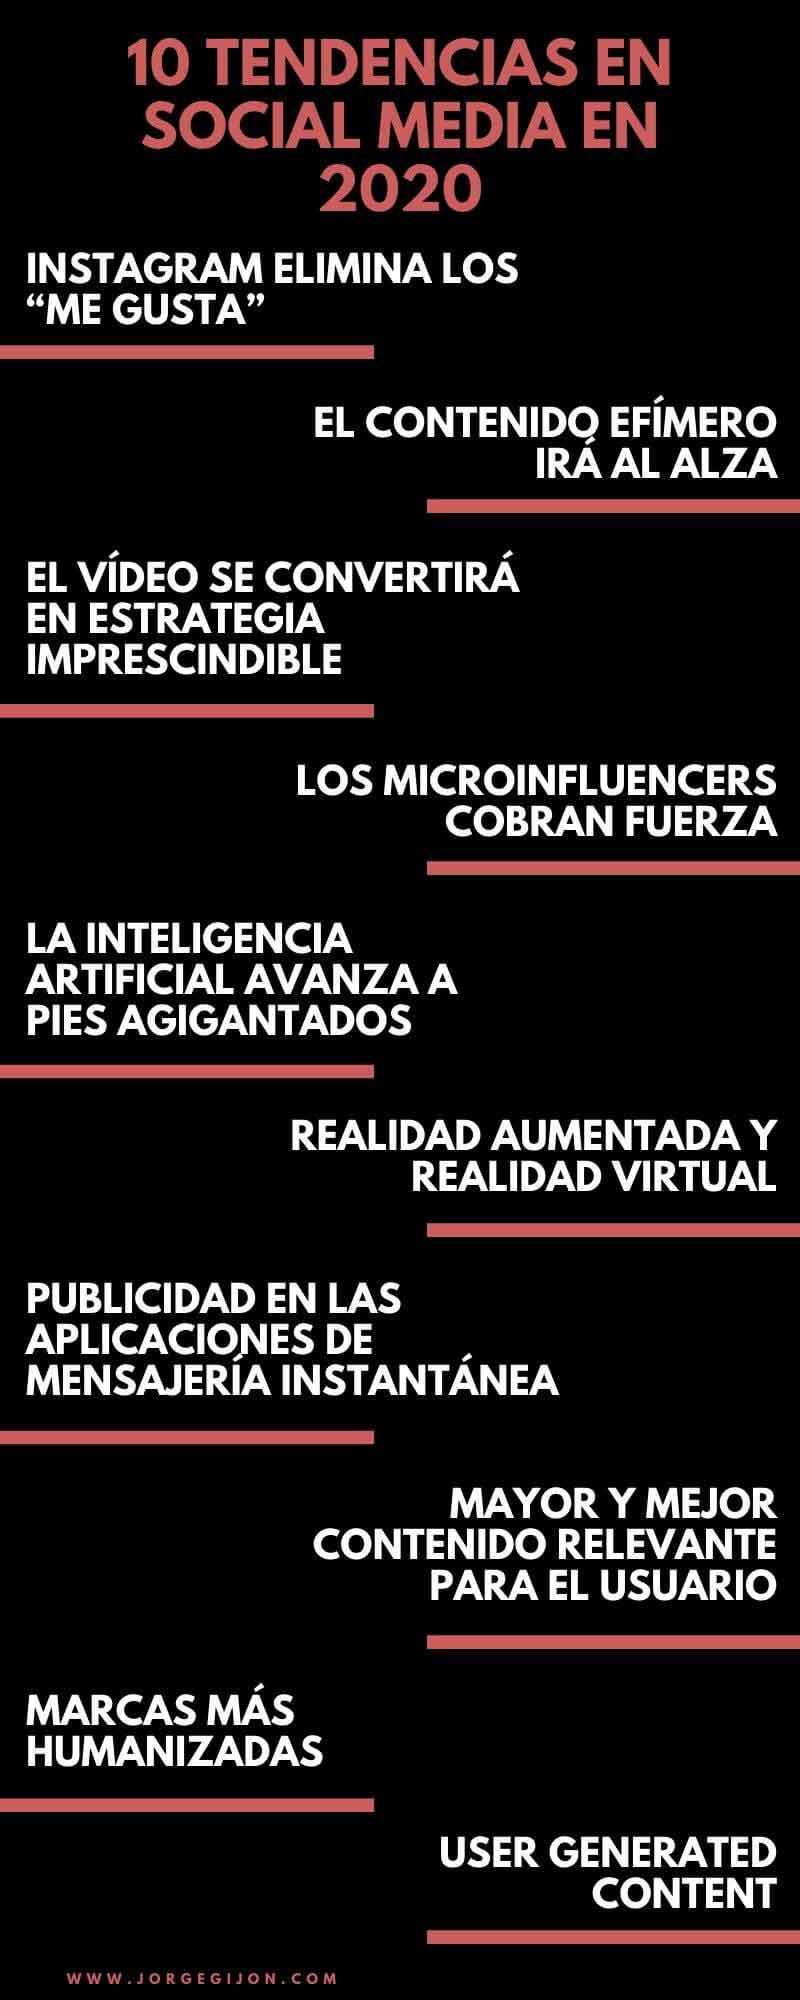 10-tendencias-en-social-media-en-2020